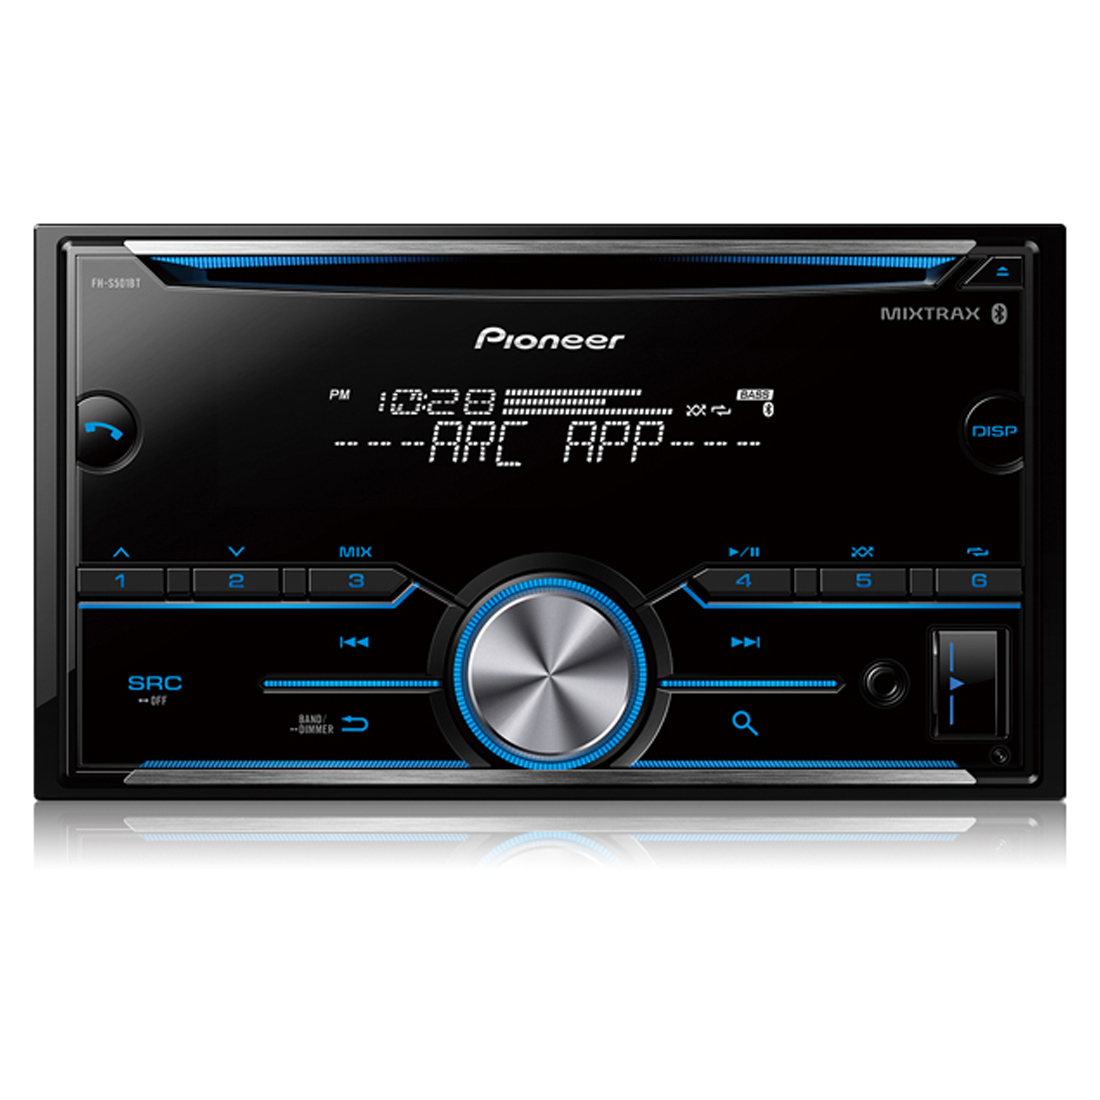 Pioneer Fh-S501Bt Double Din Cd Receiver With Mixtrax - Pioneer Fh-S501Bt Wiring Diagram